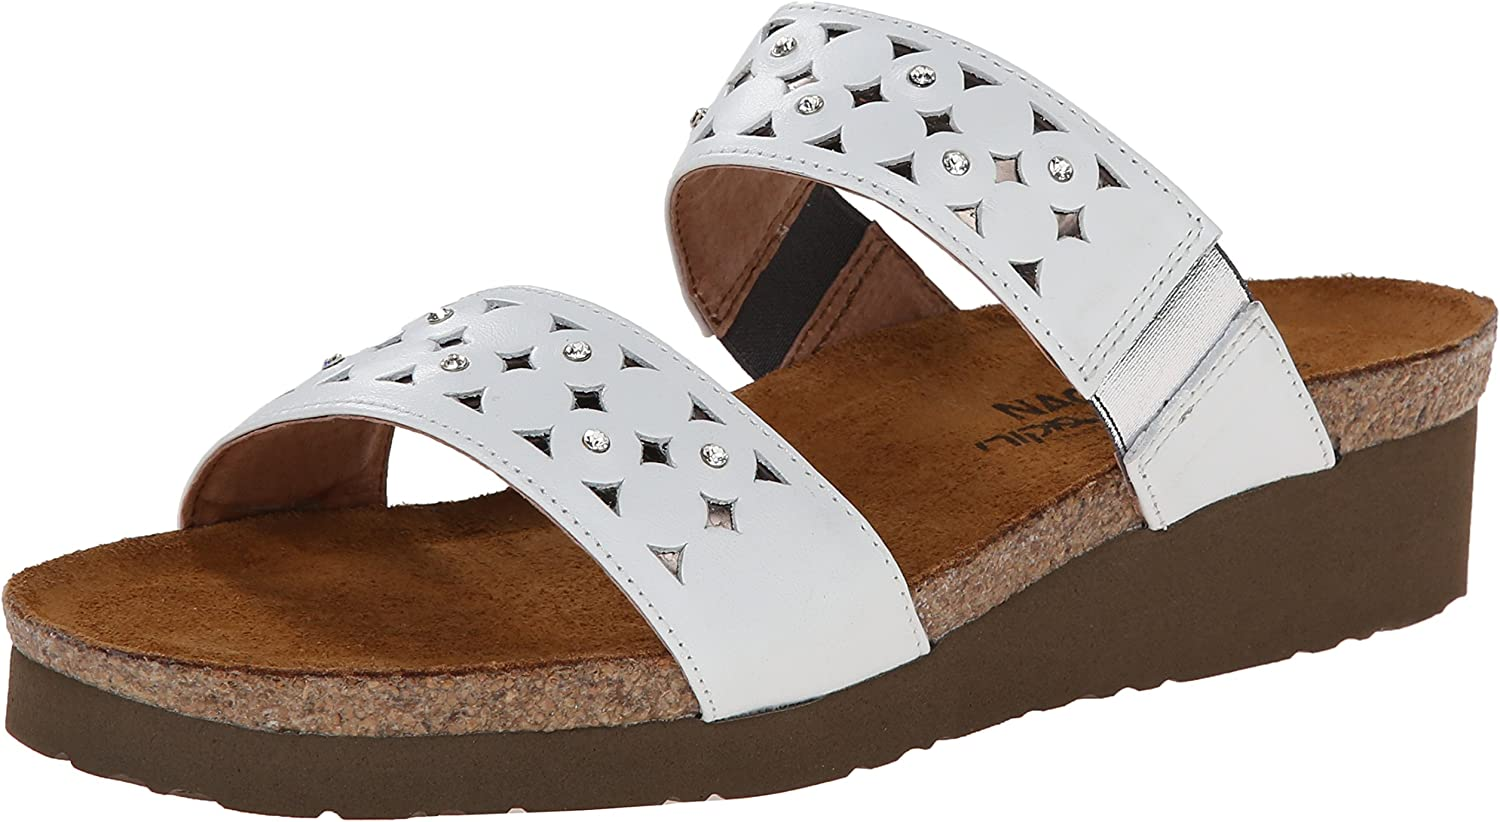 Naot Women's Susan Wedge Sandal